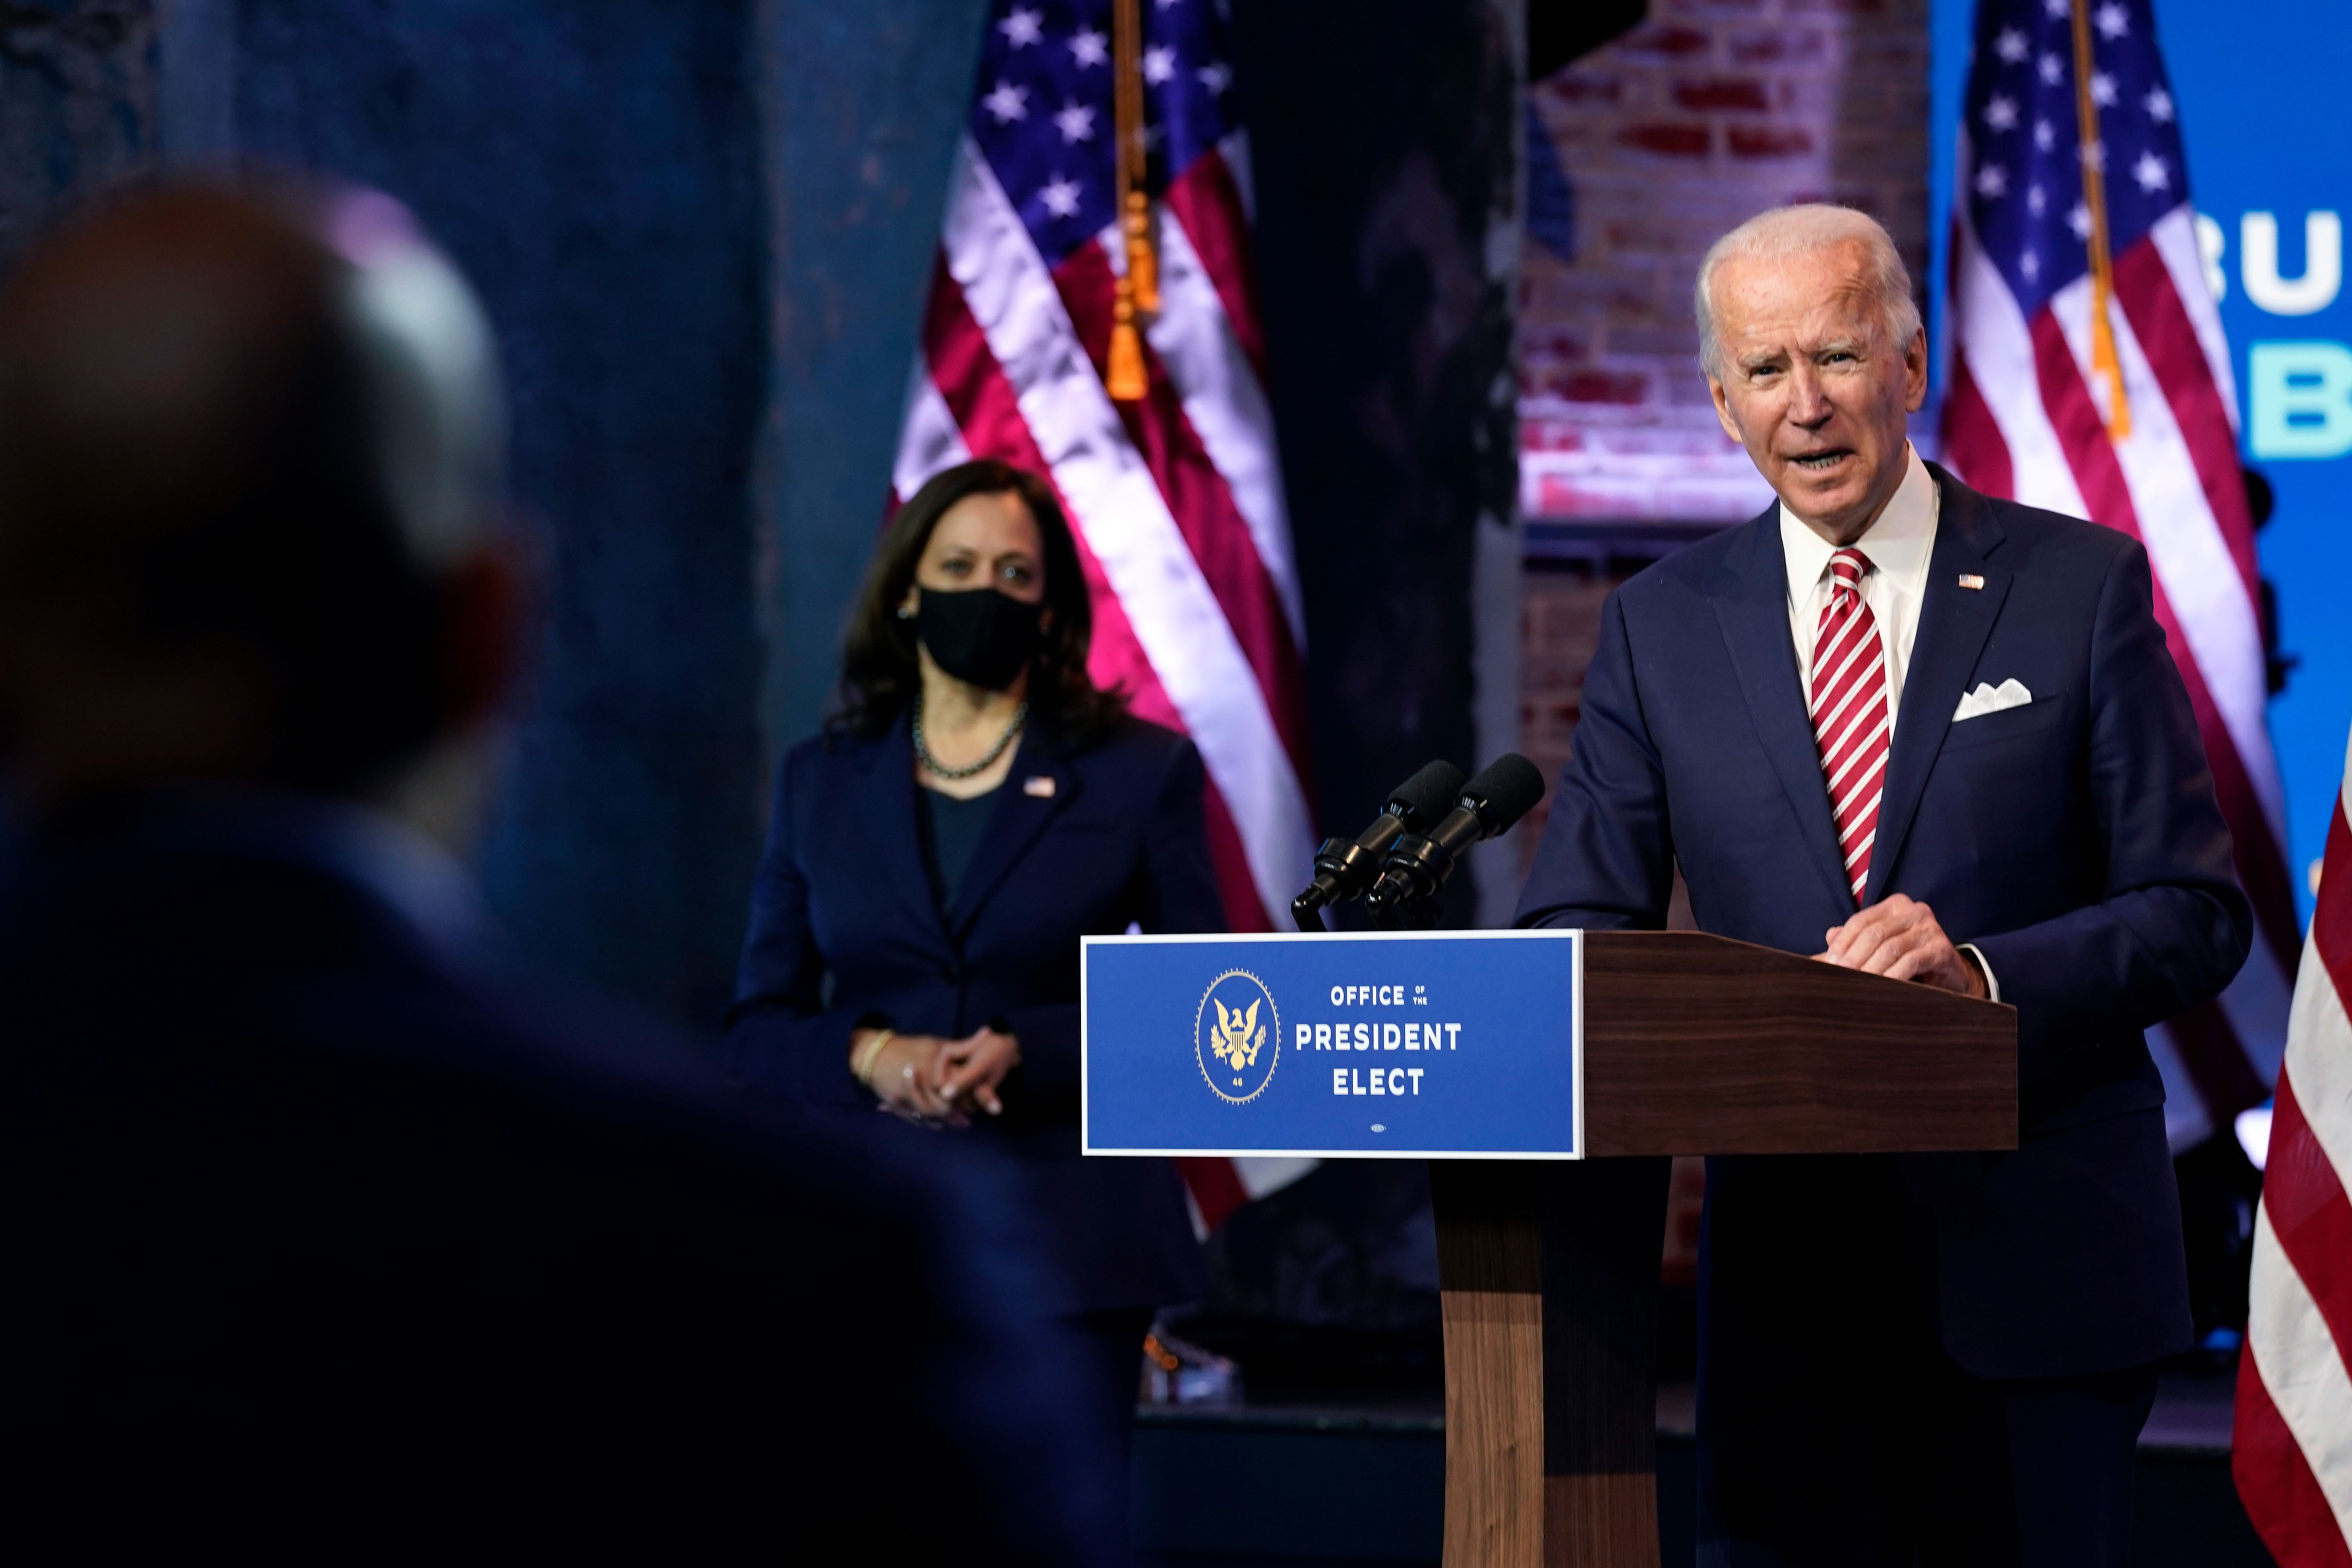 President-elect Joe Biden and Vice President-elect Kamala Harris hold a news conference in Wilmington, Delaware, on November 16.